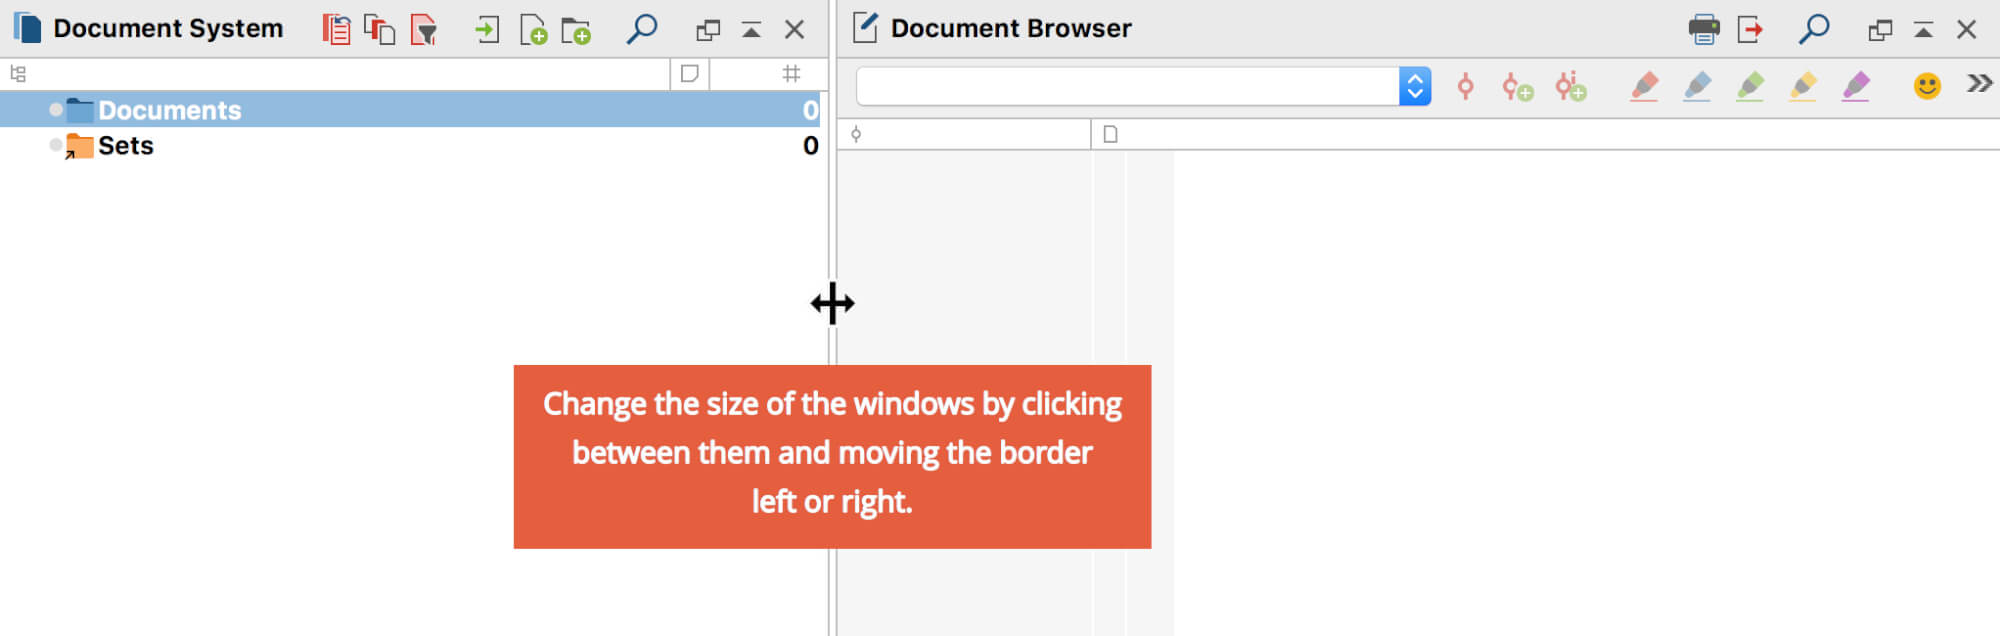 Window height and width can be adjusted by clicking and dragging borders with the mouse